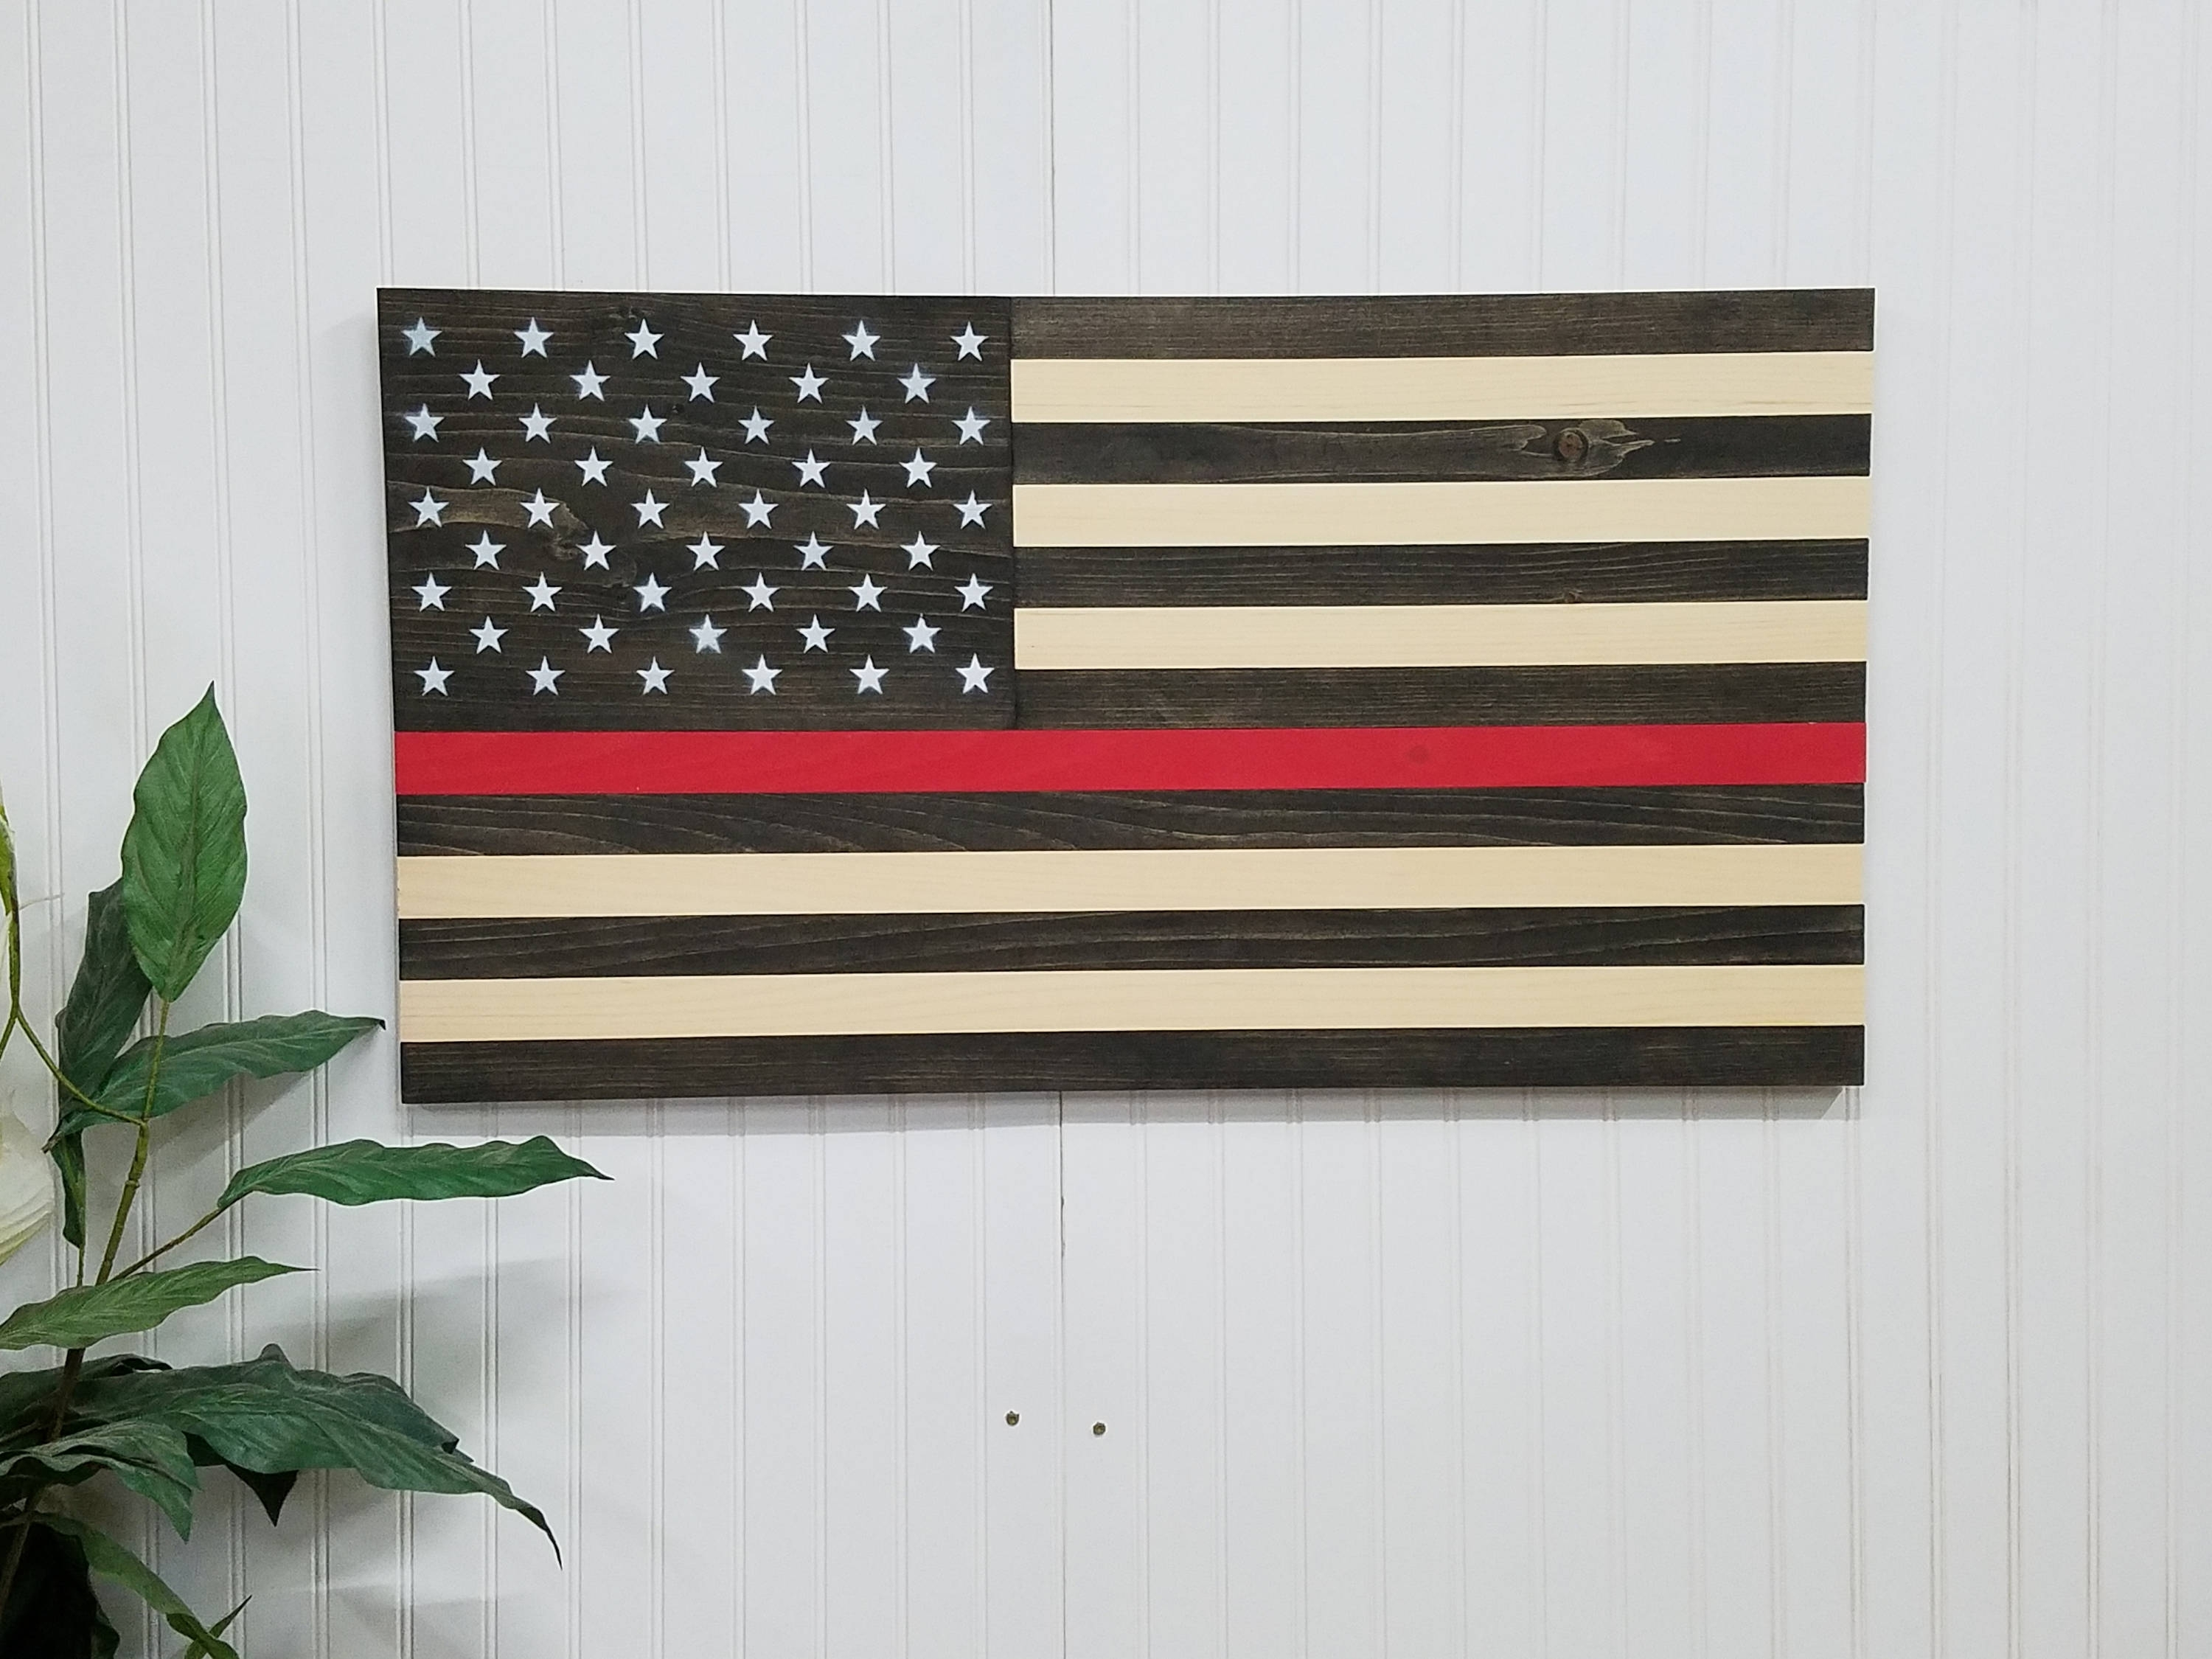 American Flag Thin Red Line Theme Wooden Wall Mount Art Decor Usa Pertaining To Latest Wooden American Flag Wall Art (View 4 of 20)